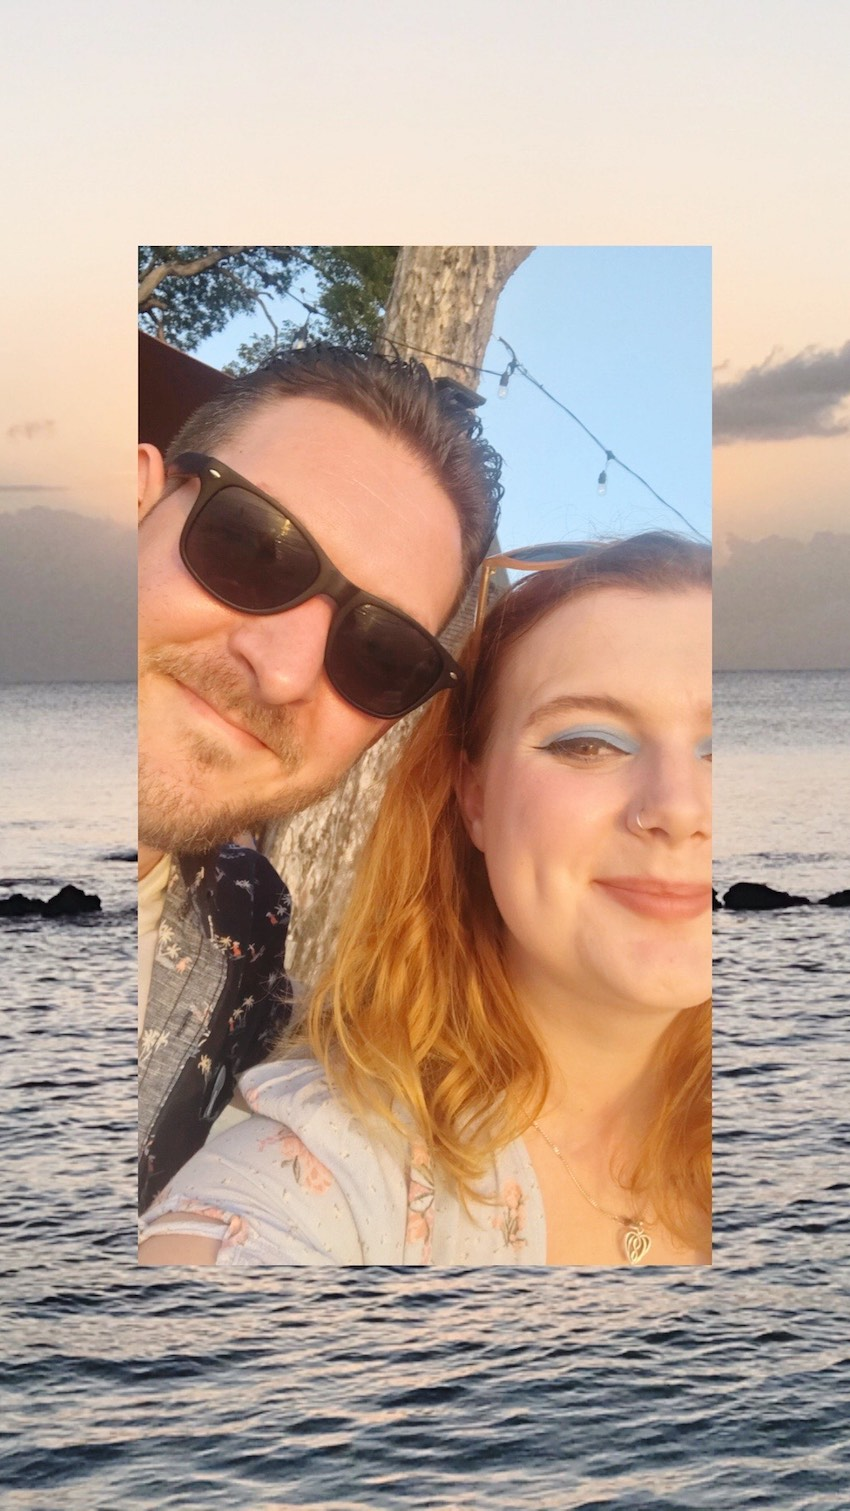 Newly wed Patchwork Couple smiling on honeymoon in Caribbean